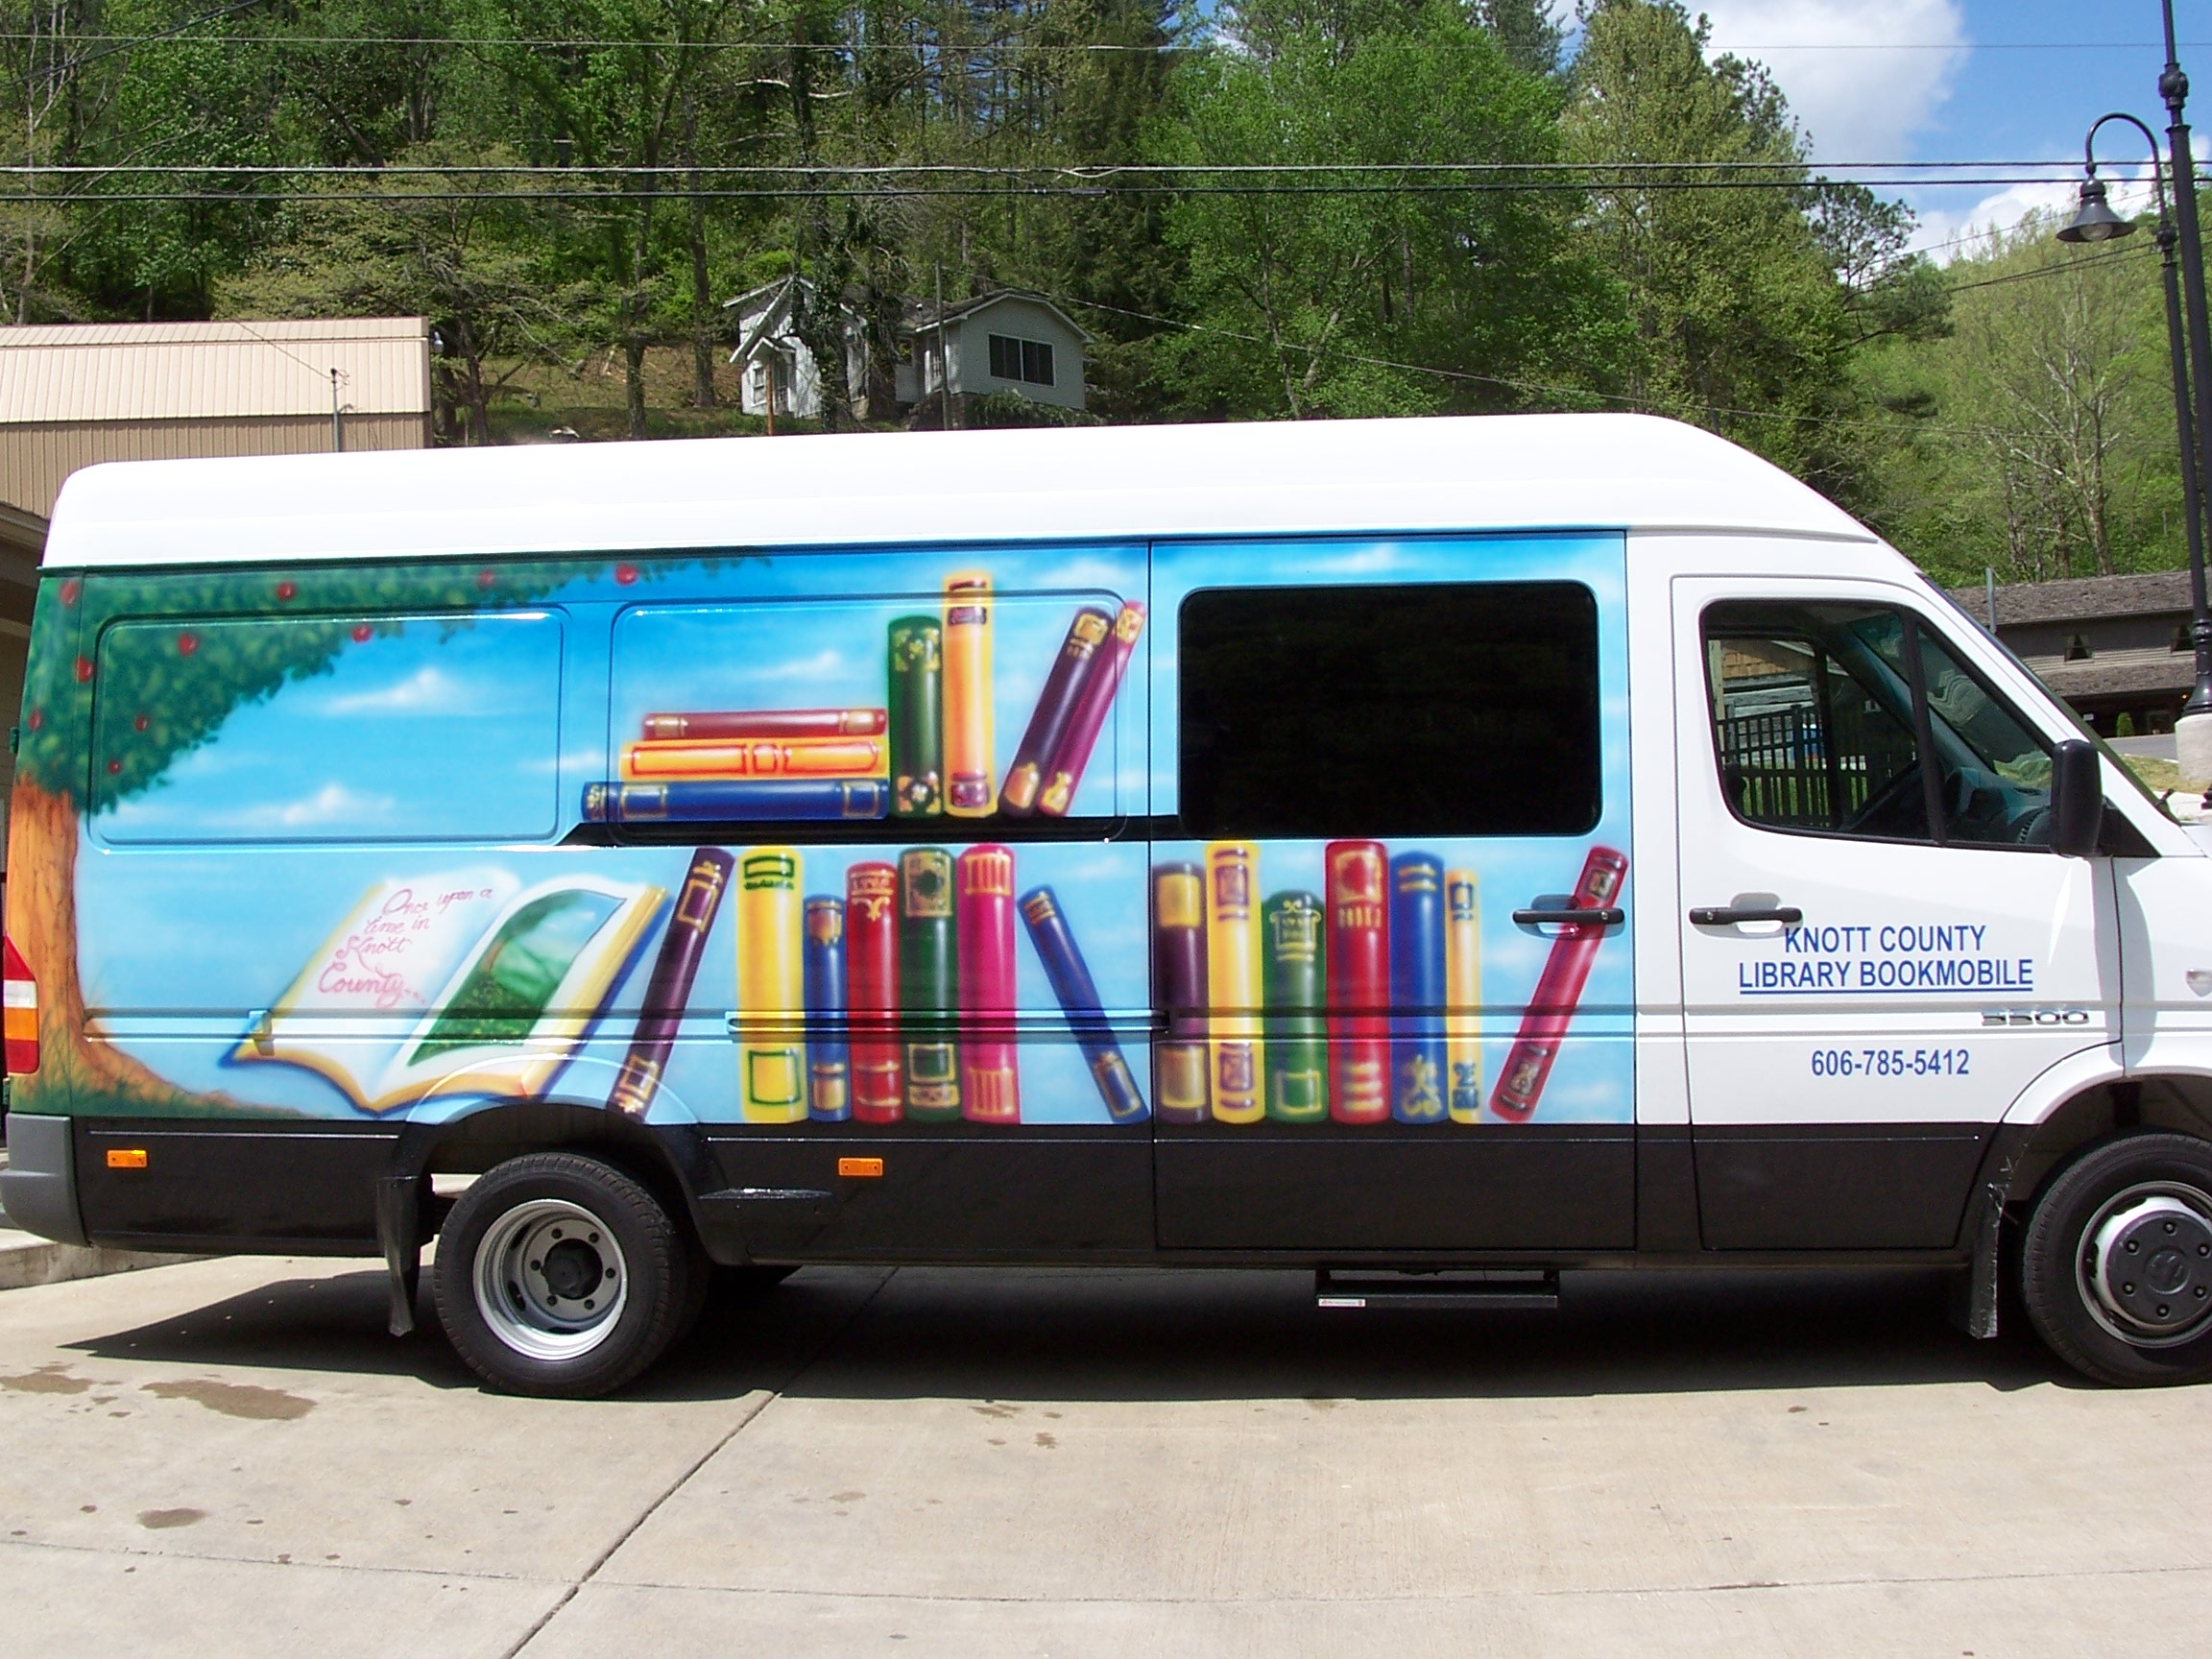 Knott County Bookmobile